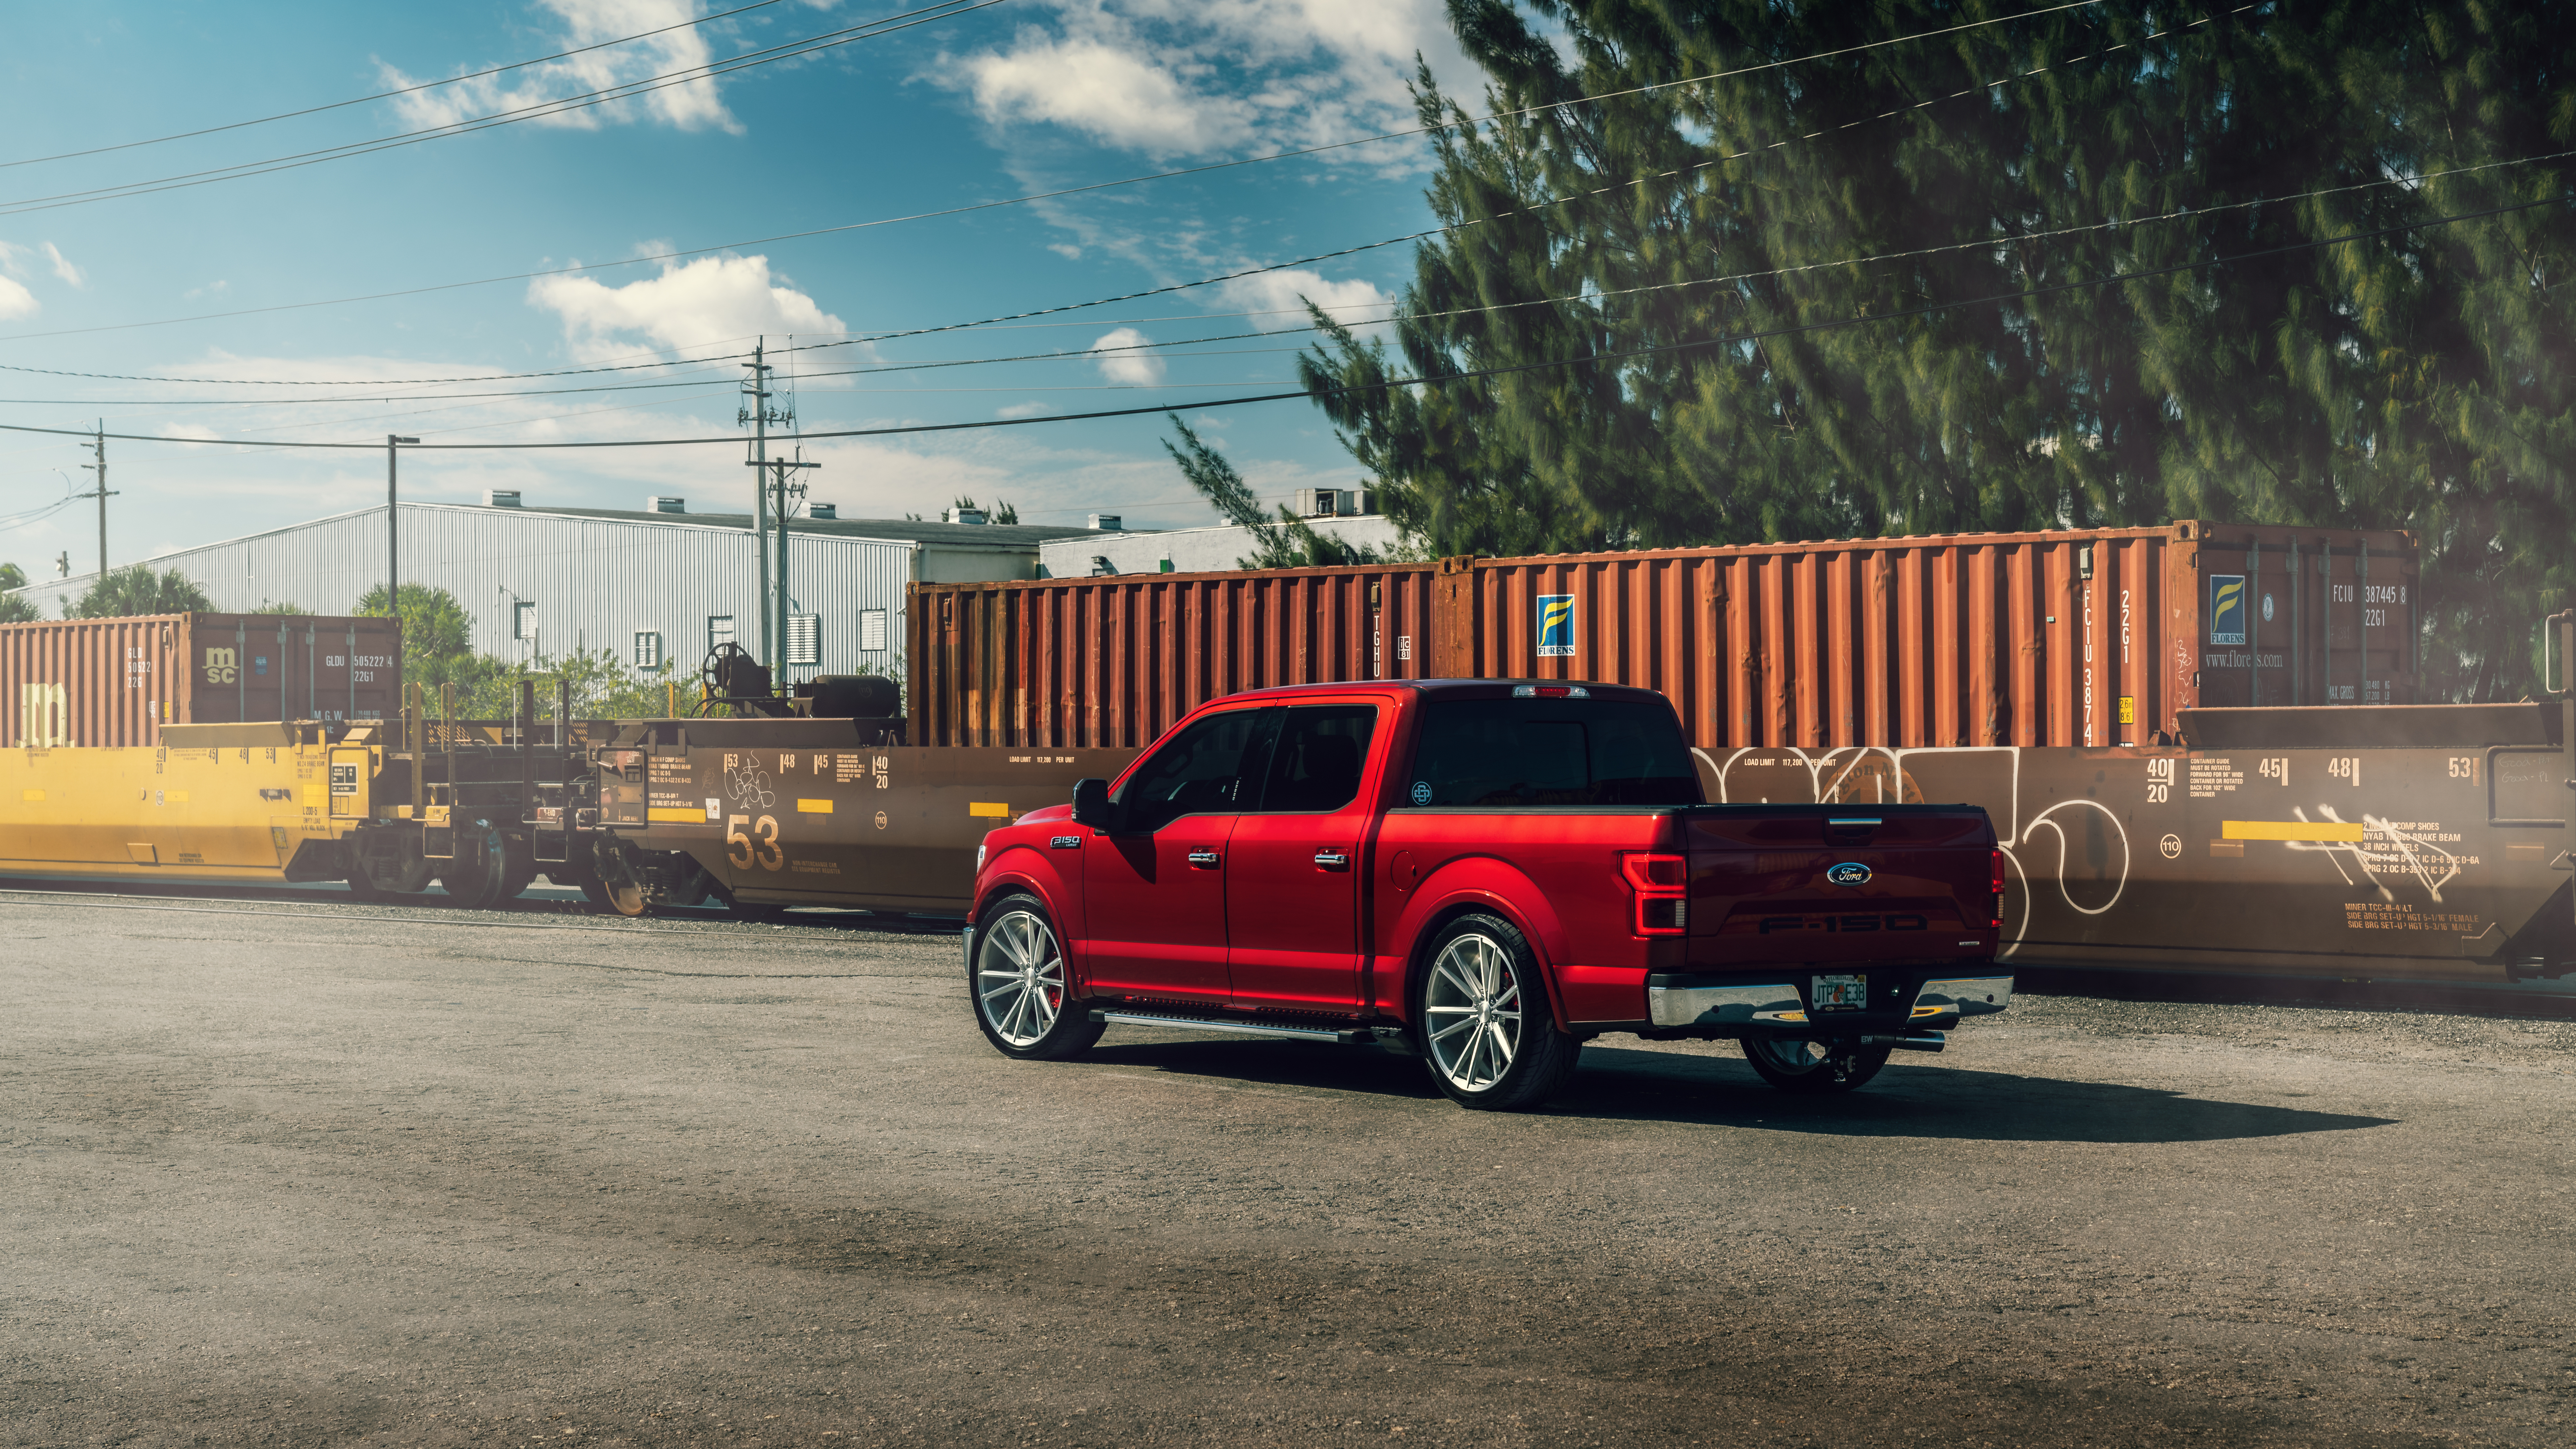 2021-ford-f-150-velgen-contained-ruby-red-8k-j3.jpg